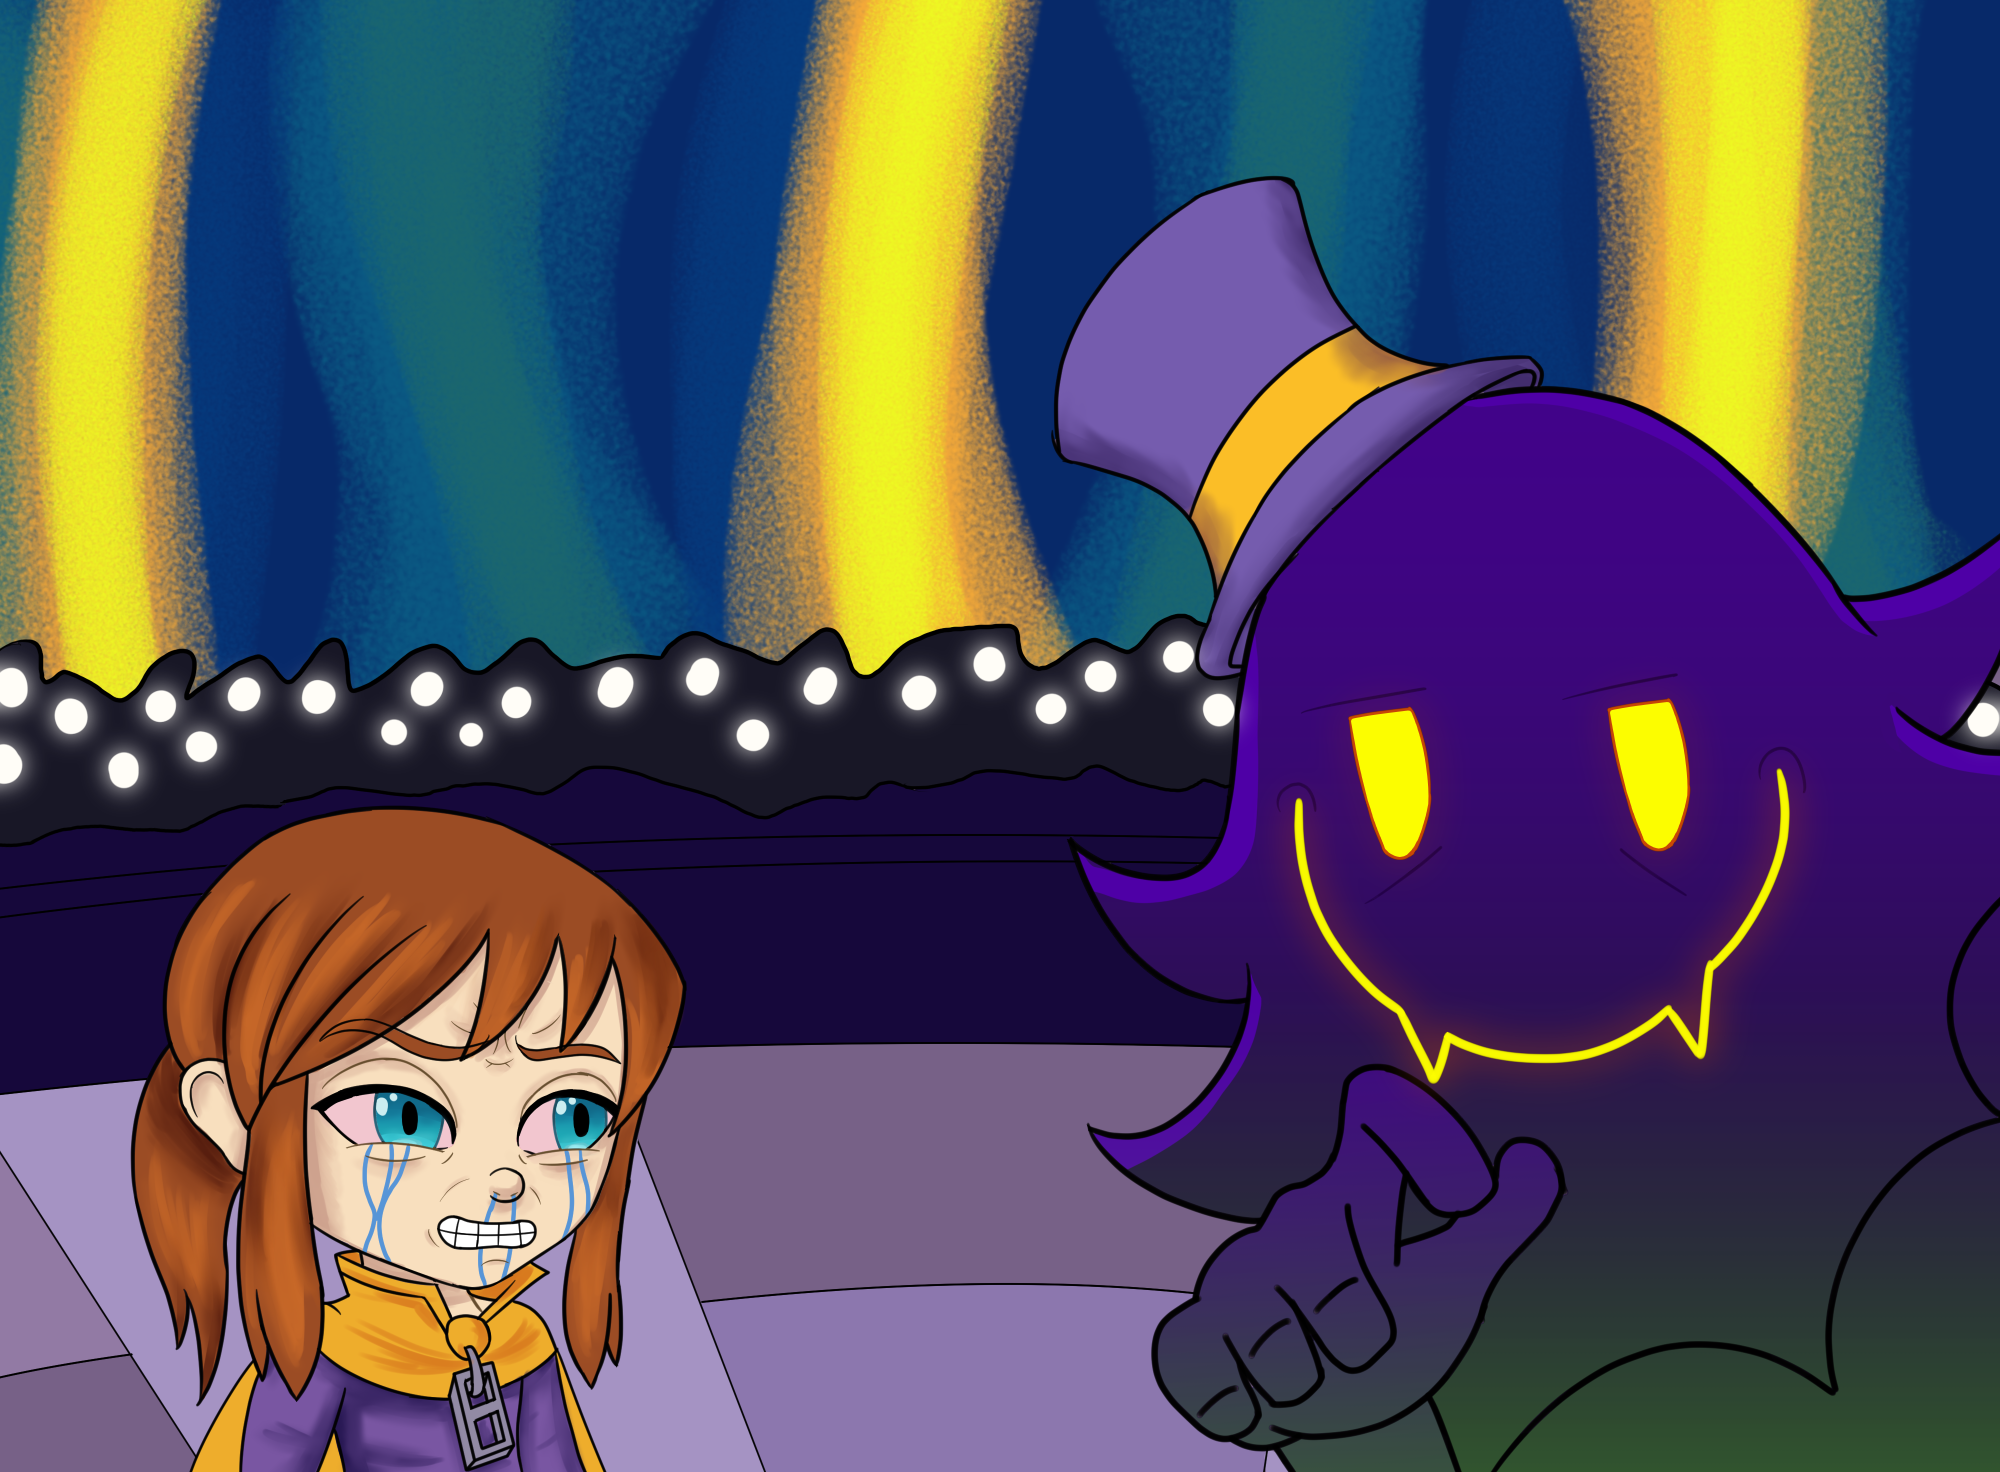 Hat Kid - Please give me back my hat.